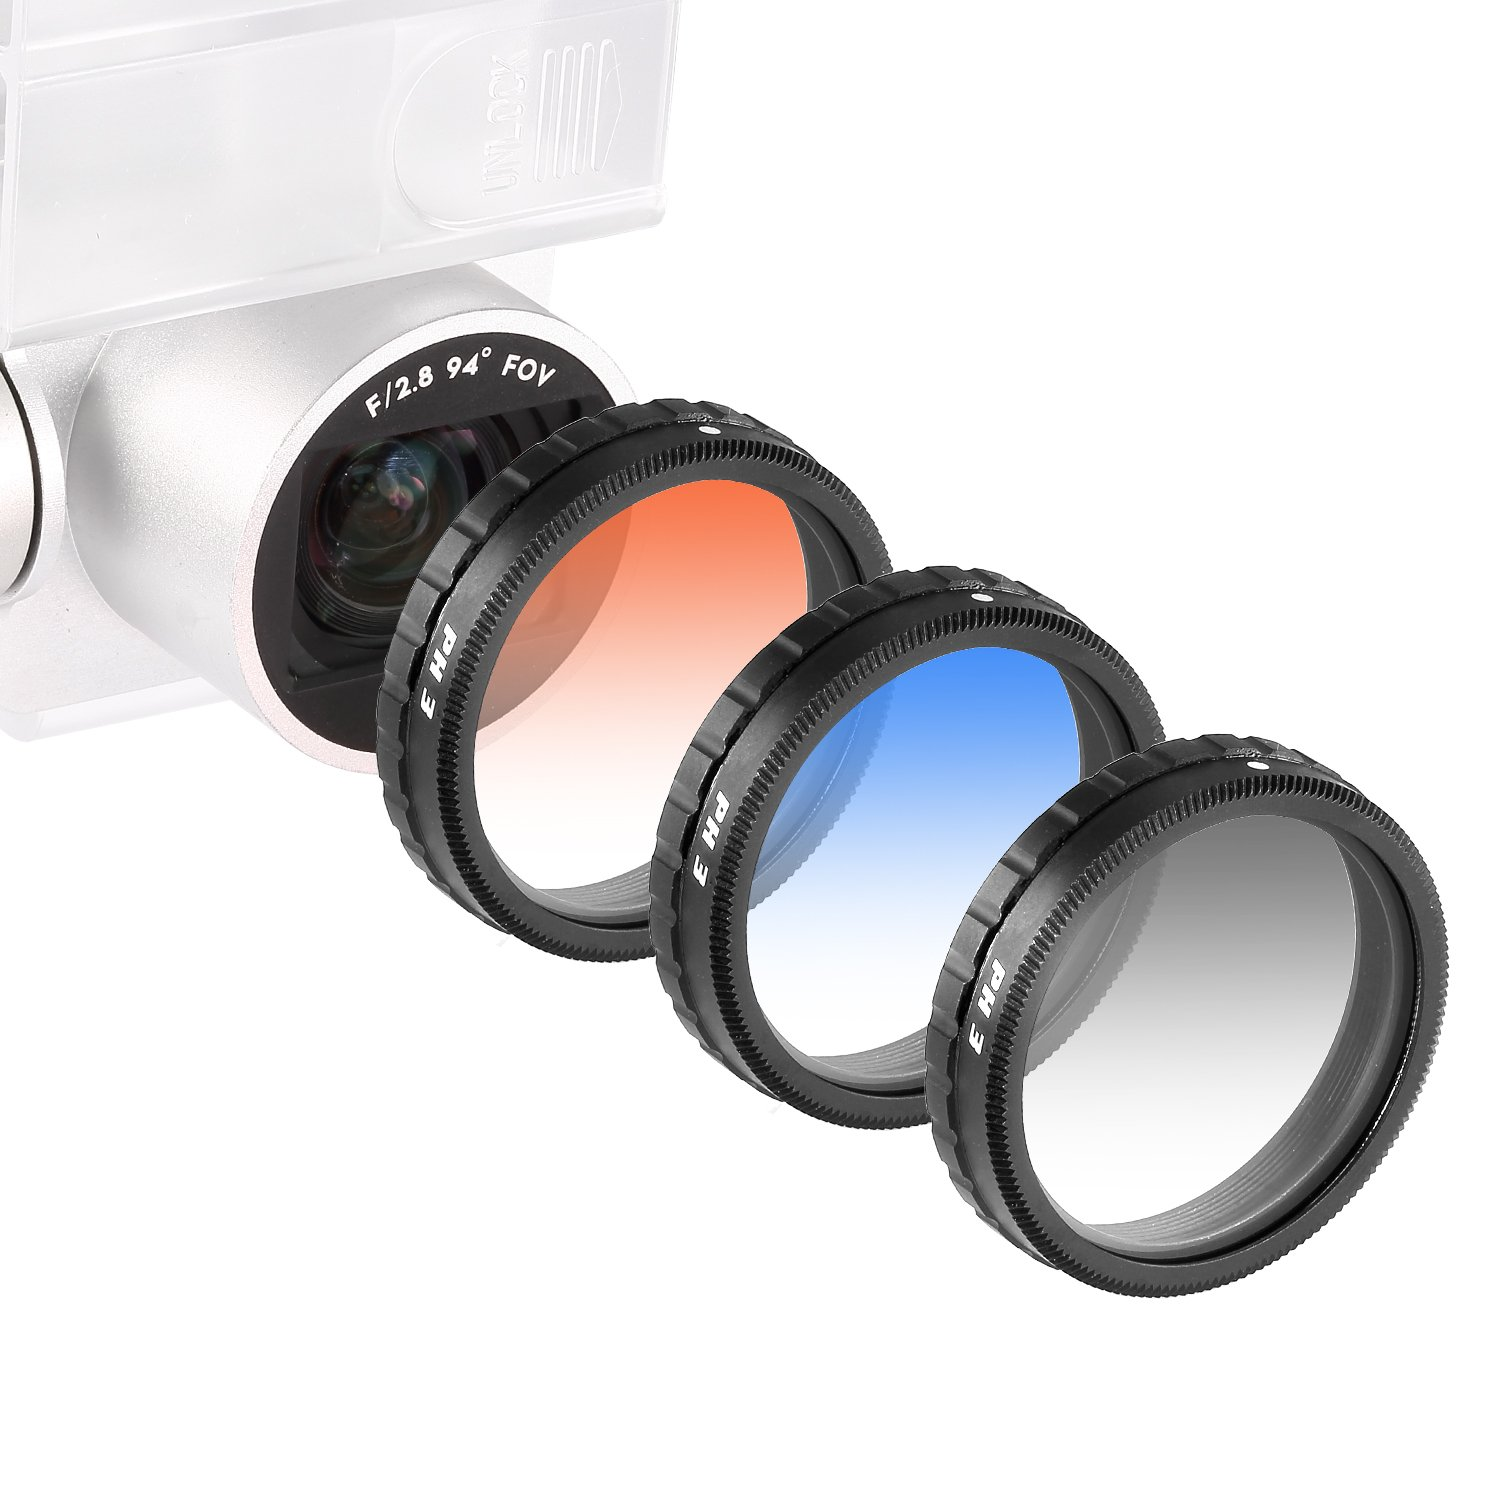 Neewer® for DJI Phantom 4, DJI Phantom 3 Professional and Advanced, Graduated Lens Filter Set 3 Pieces: Graduated Grey Filter, Orange Filter and Blue Filter Not for DJI Phantom 3 Standard